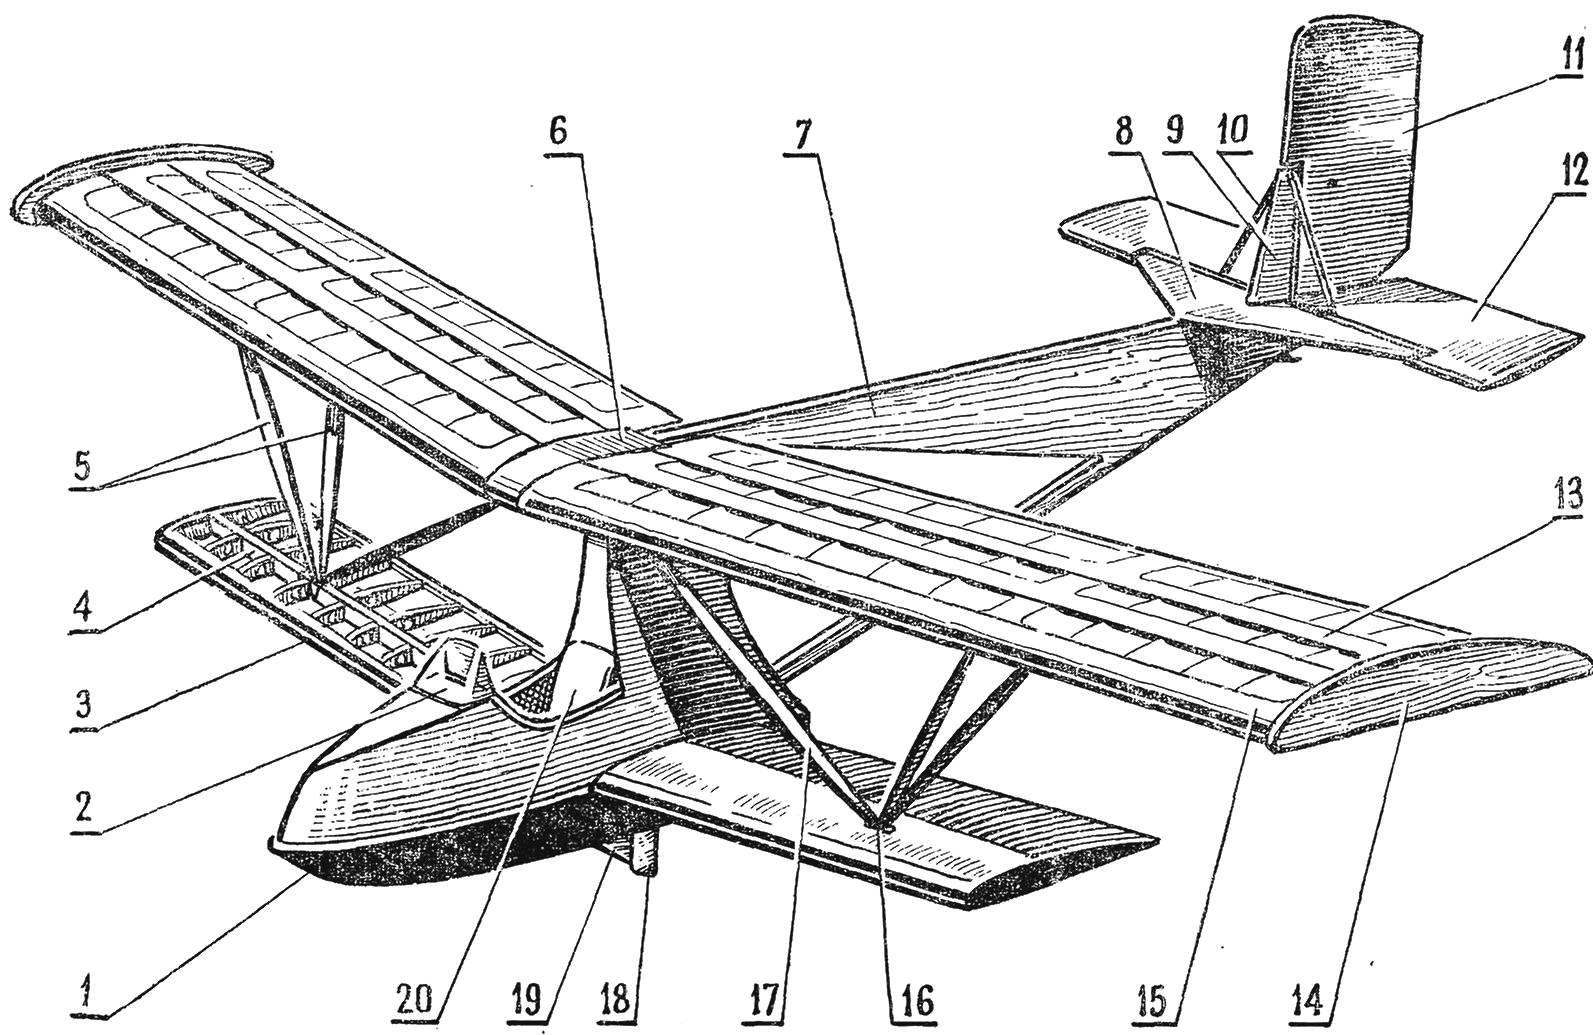 Fig. 2. The overall layout of hydroplane BRO-17U